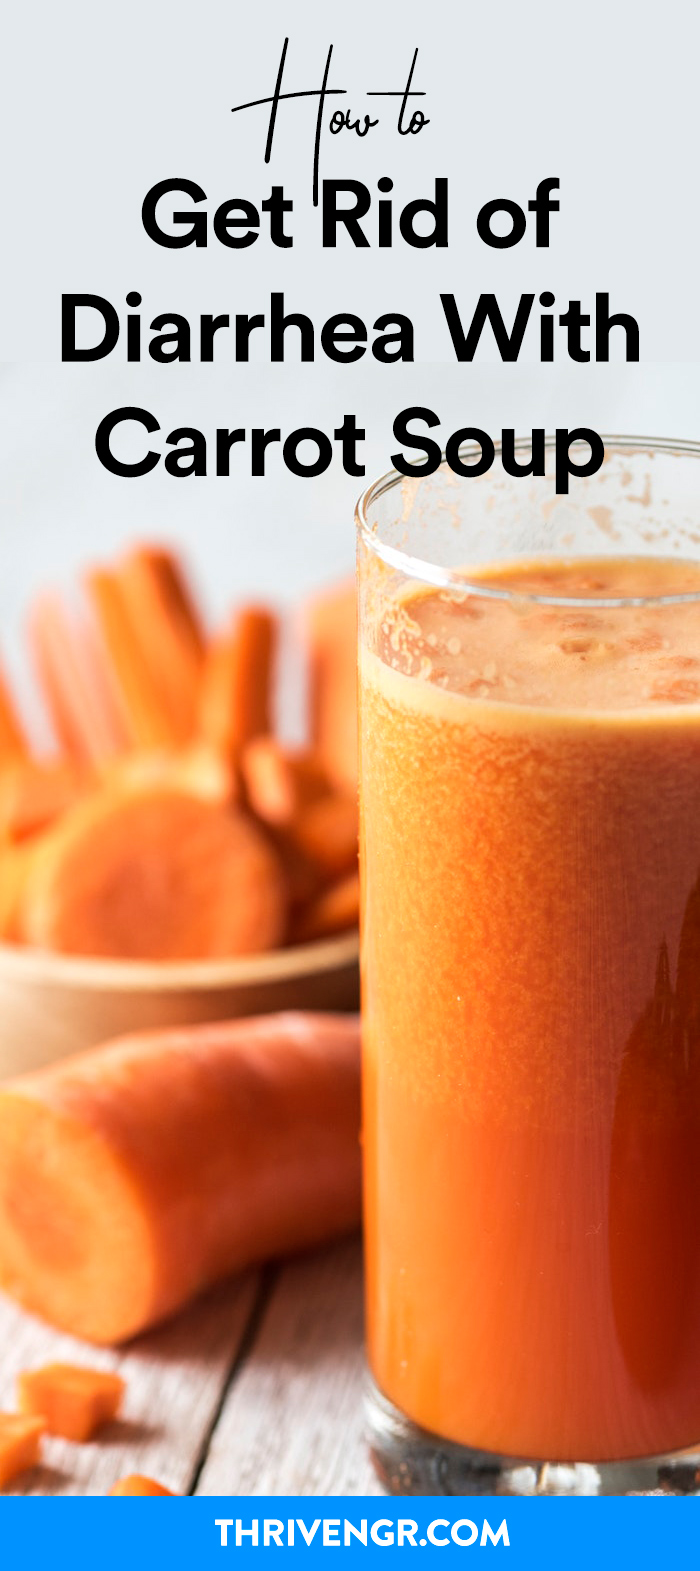 How to use carrot soup to get rid of diarrhea fast